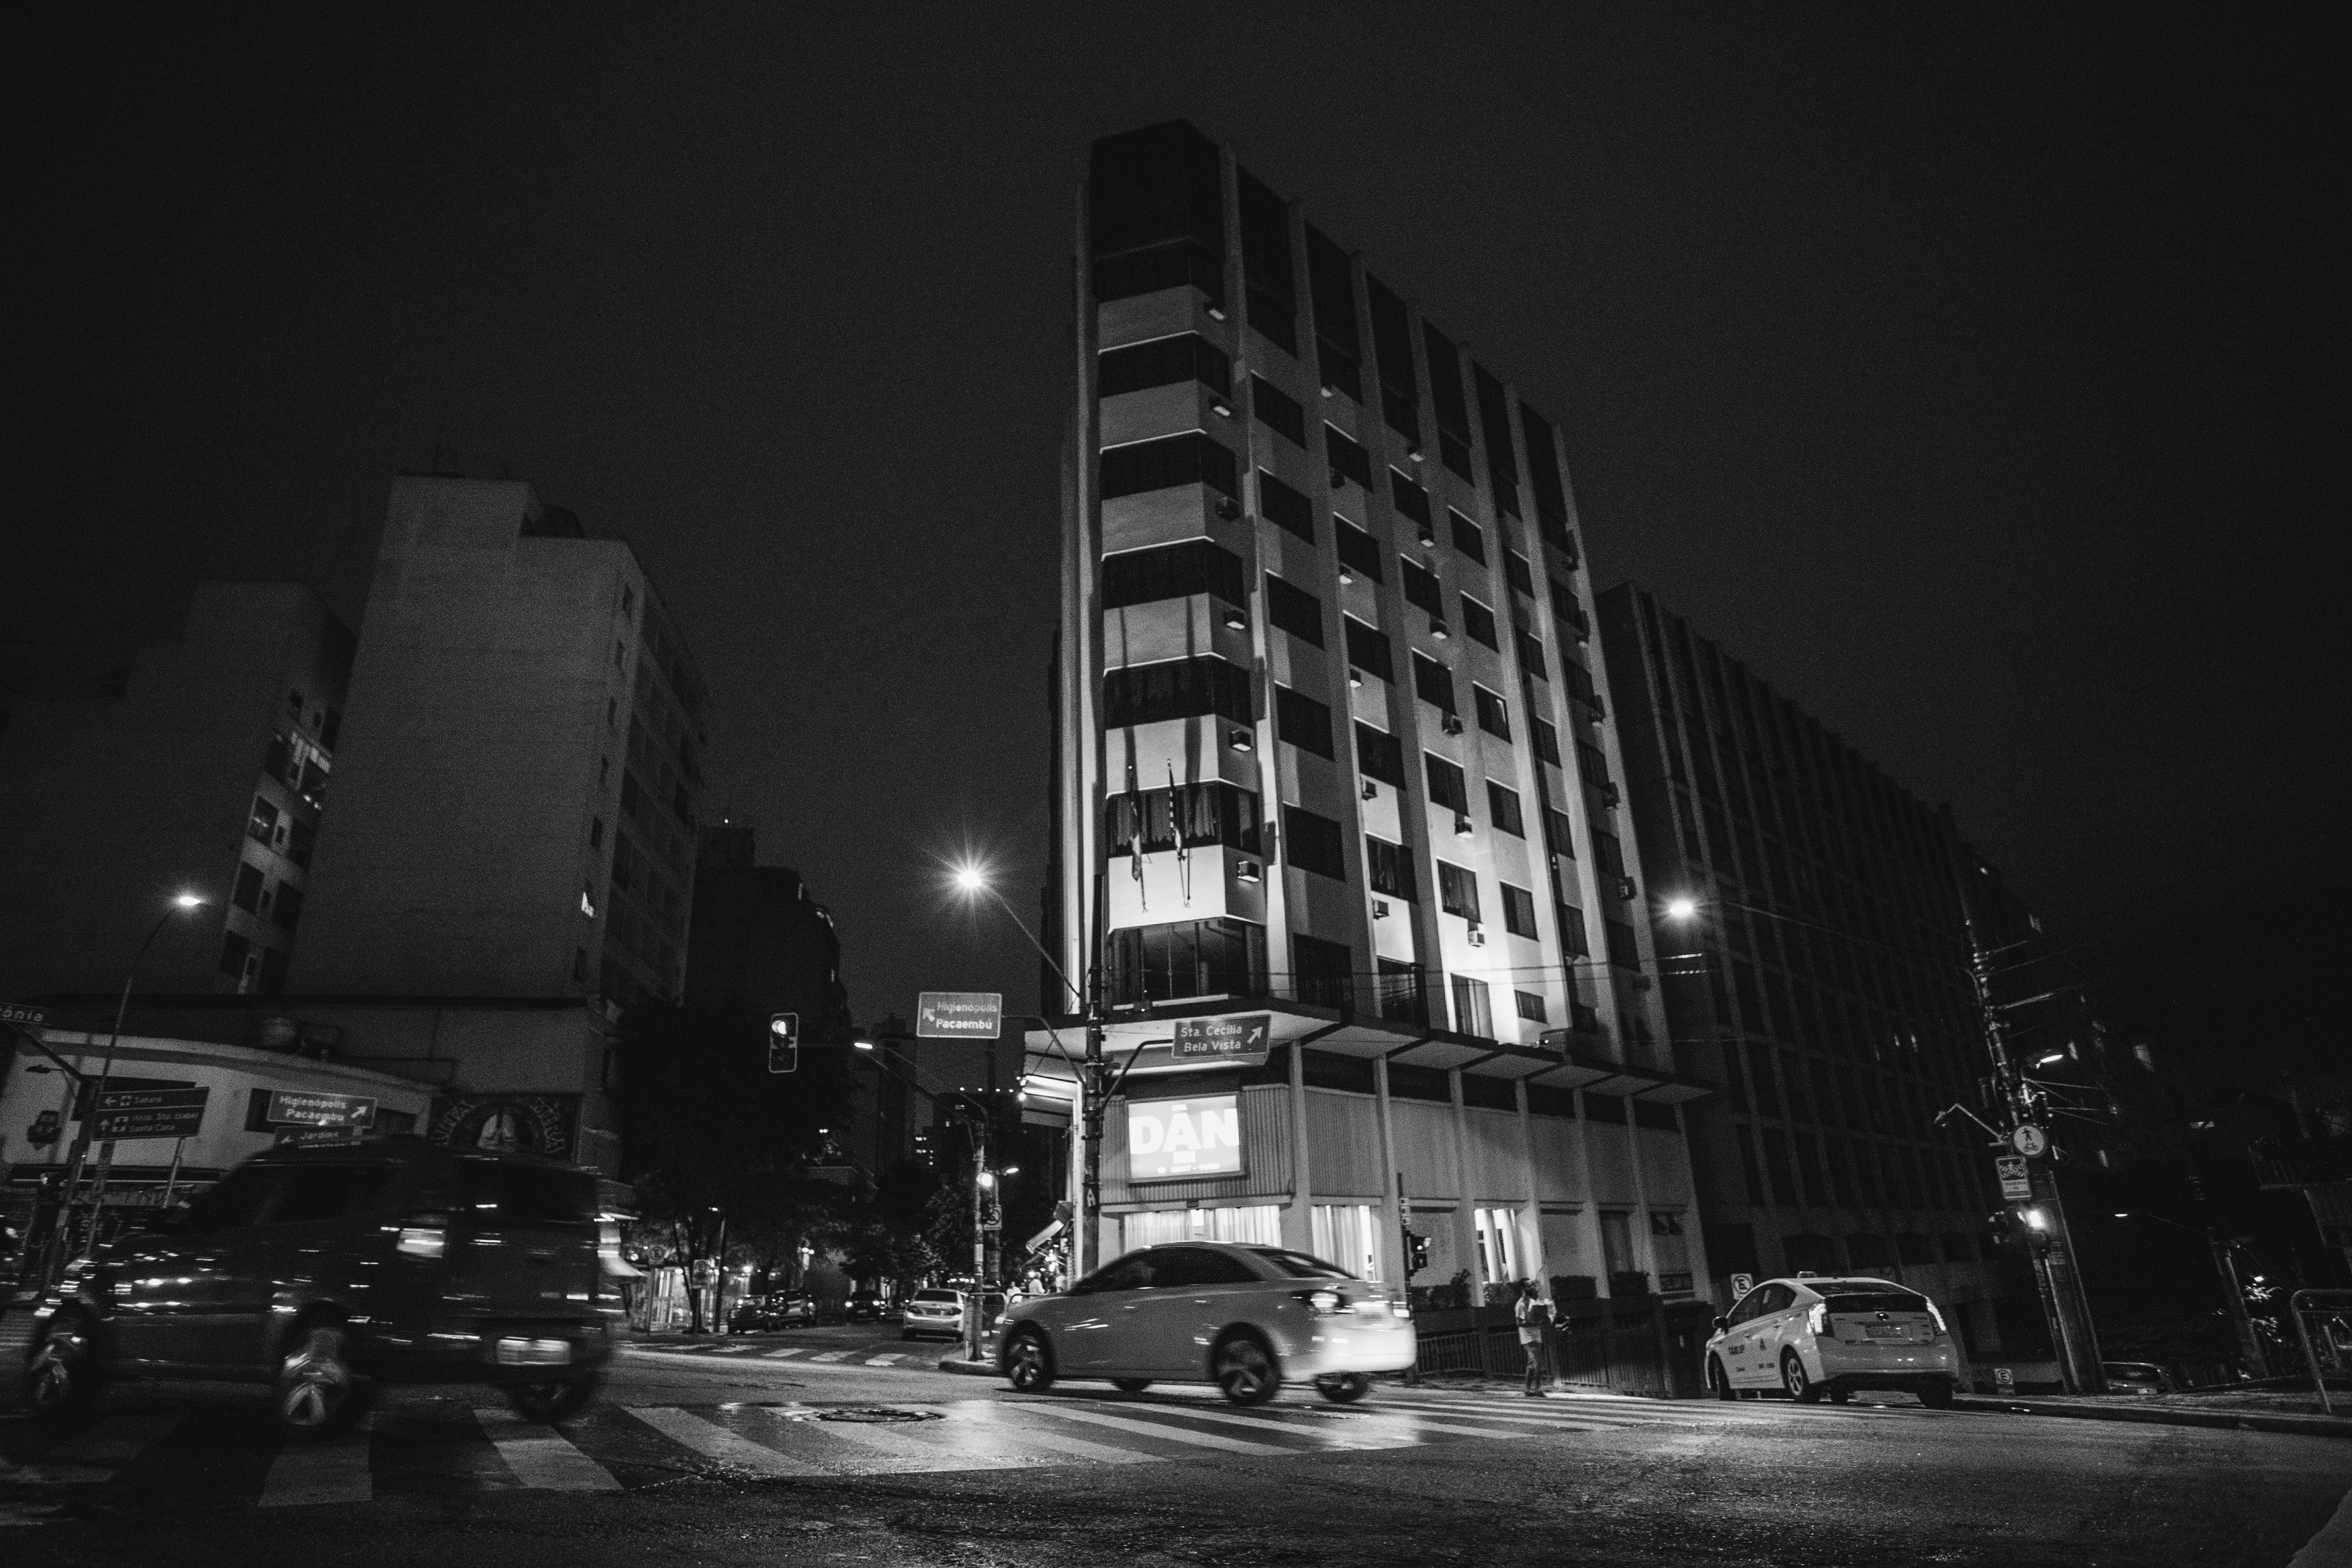 Grayscale Photography of Building and Street